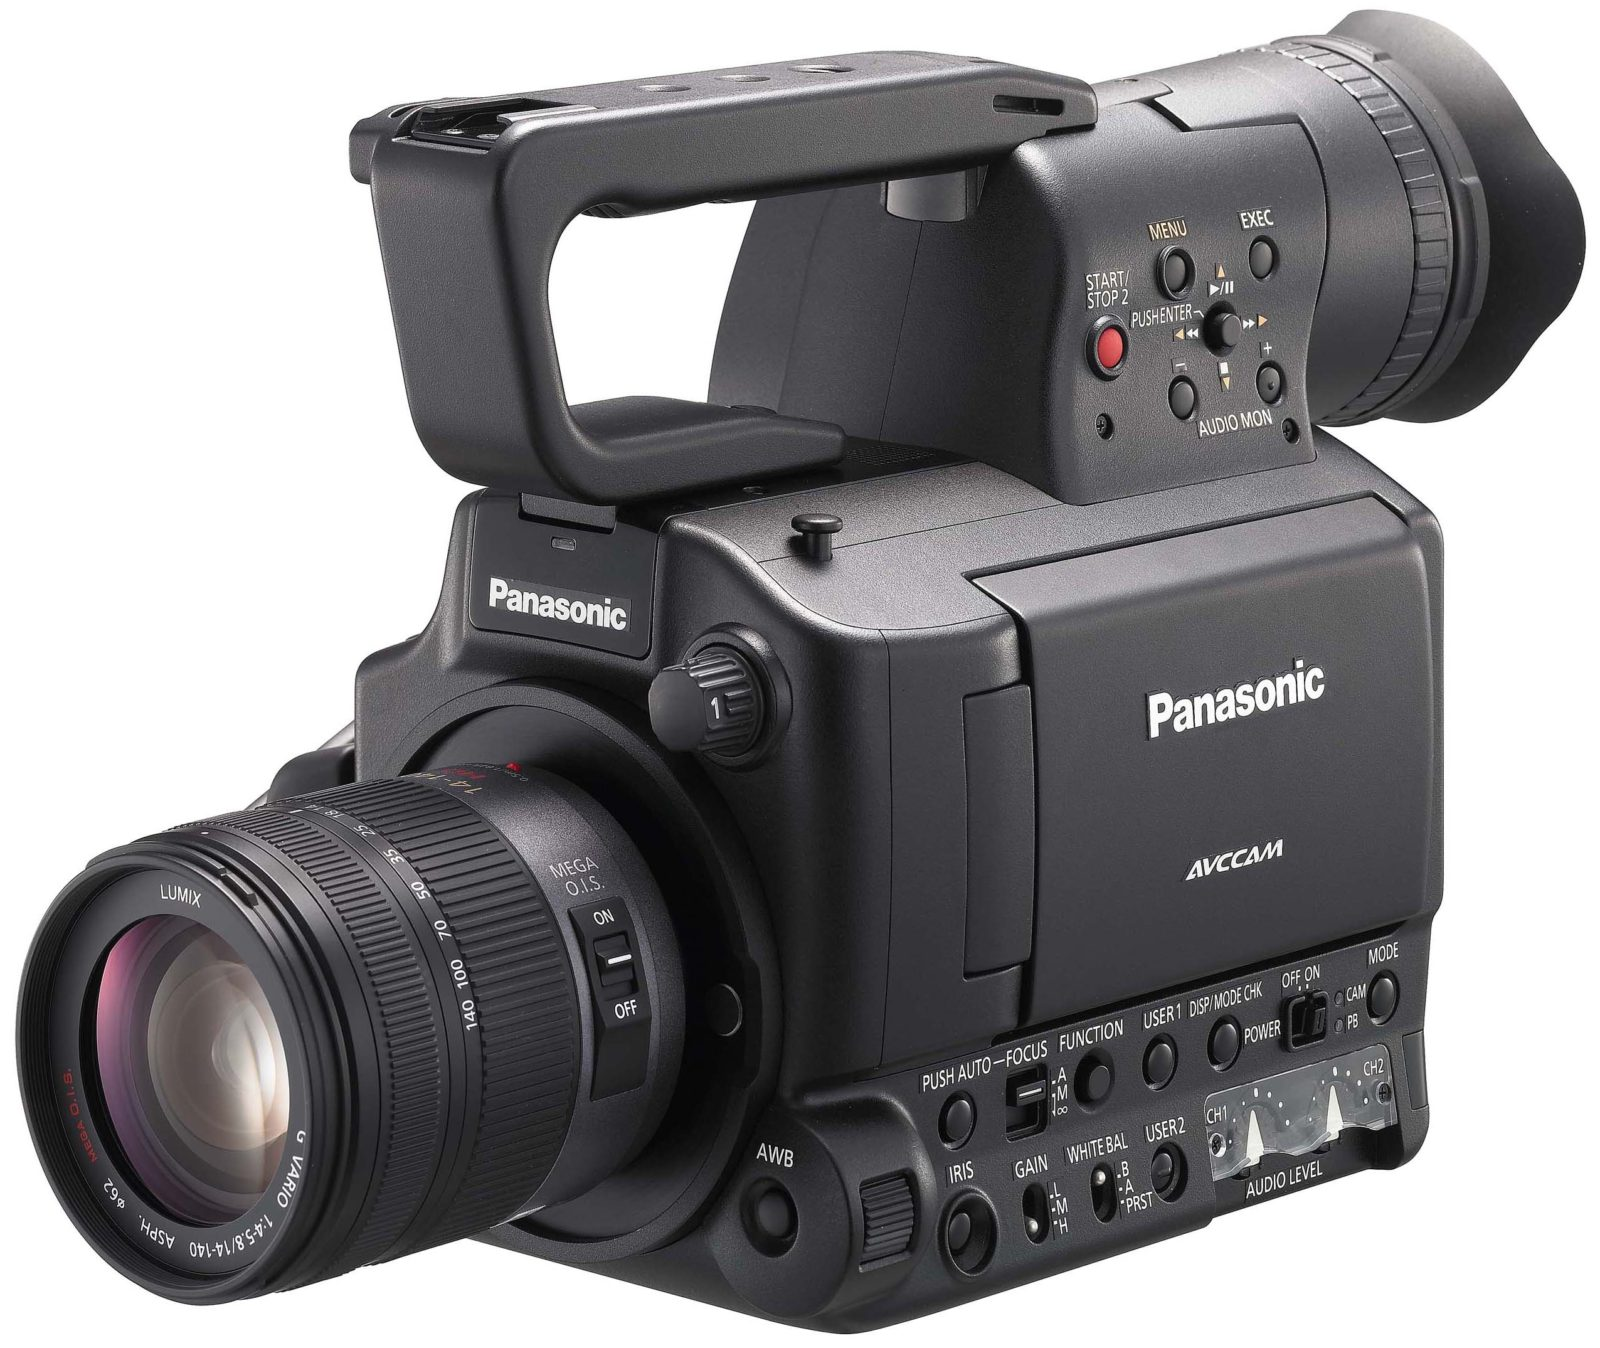 Panasonic AF-100 Rentals in Brooklyn and Manhattan Nyc